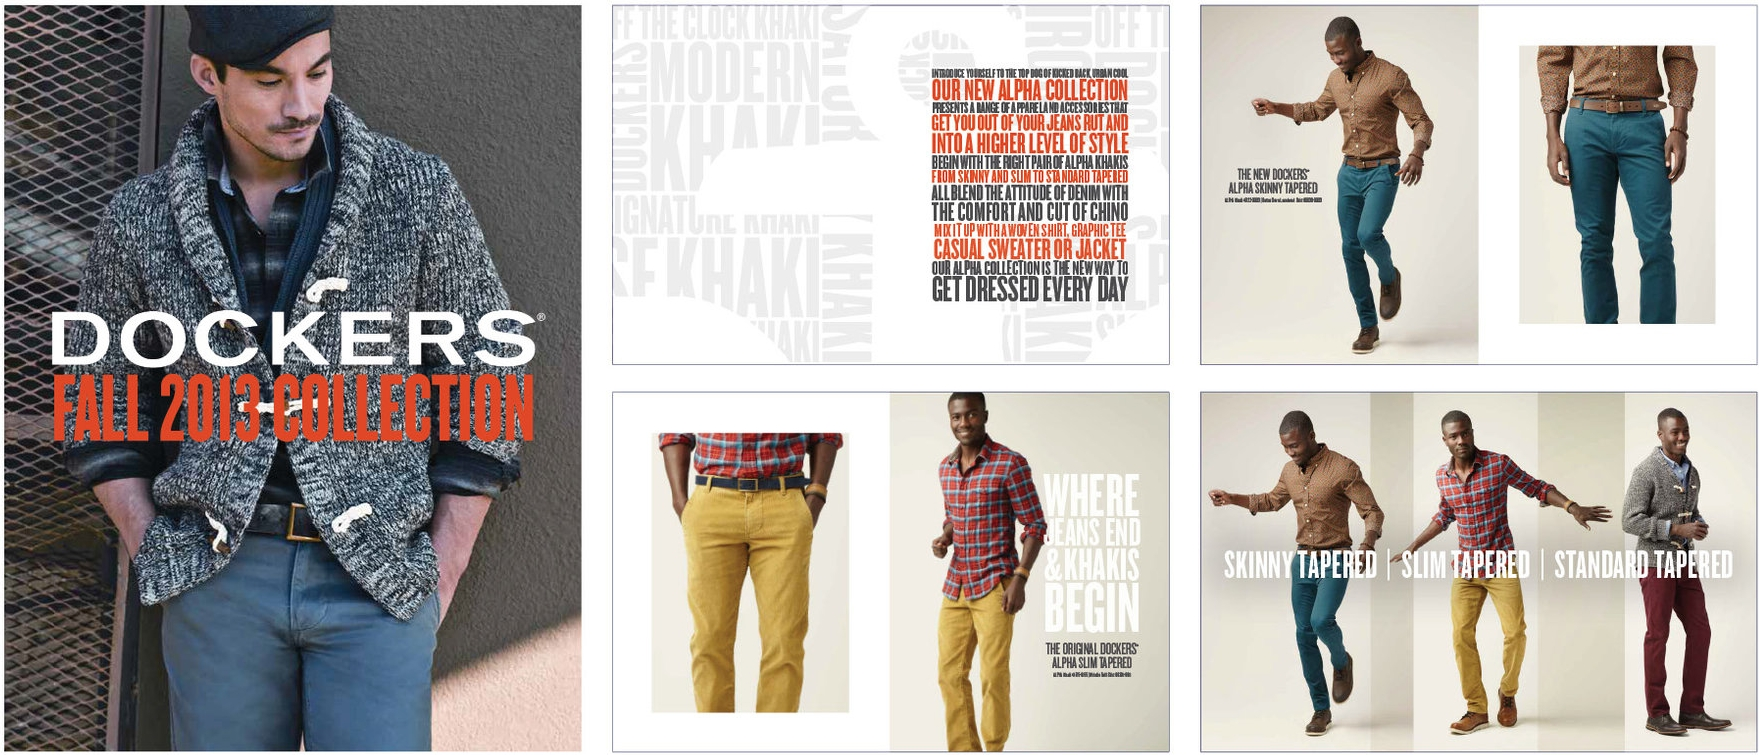 Dockers fall 2013 lookbook - Overview of the seasons offerings for  Fall 2013.Responsible for design and layout.